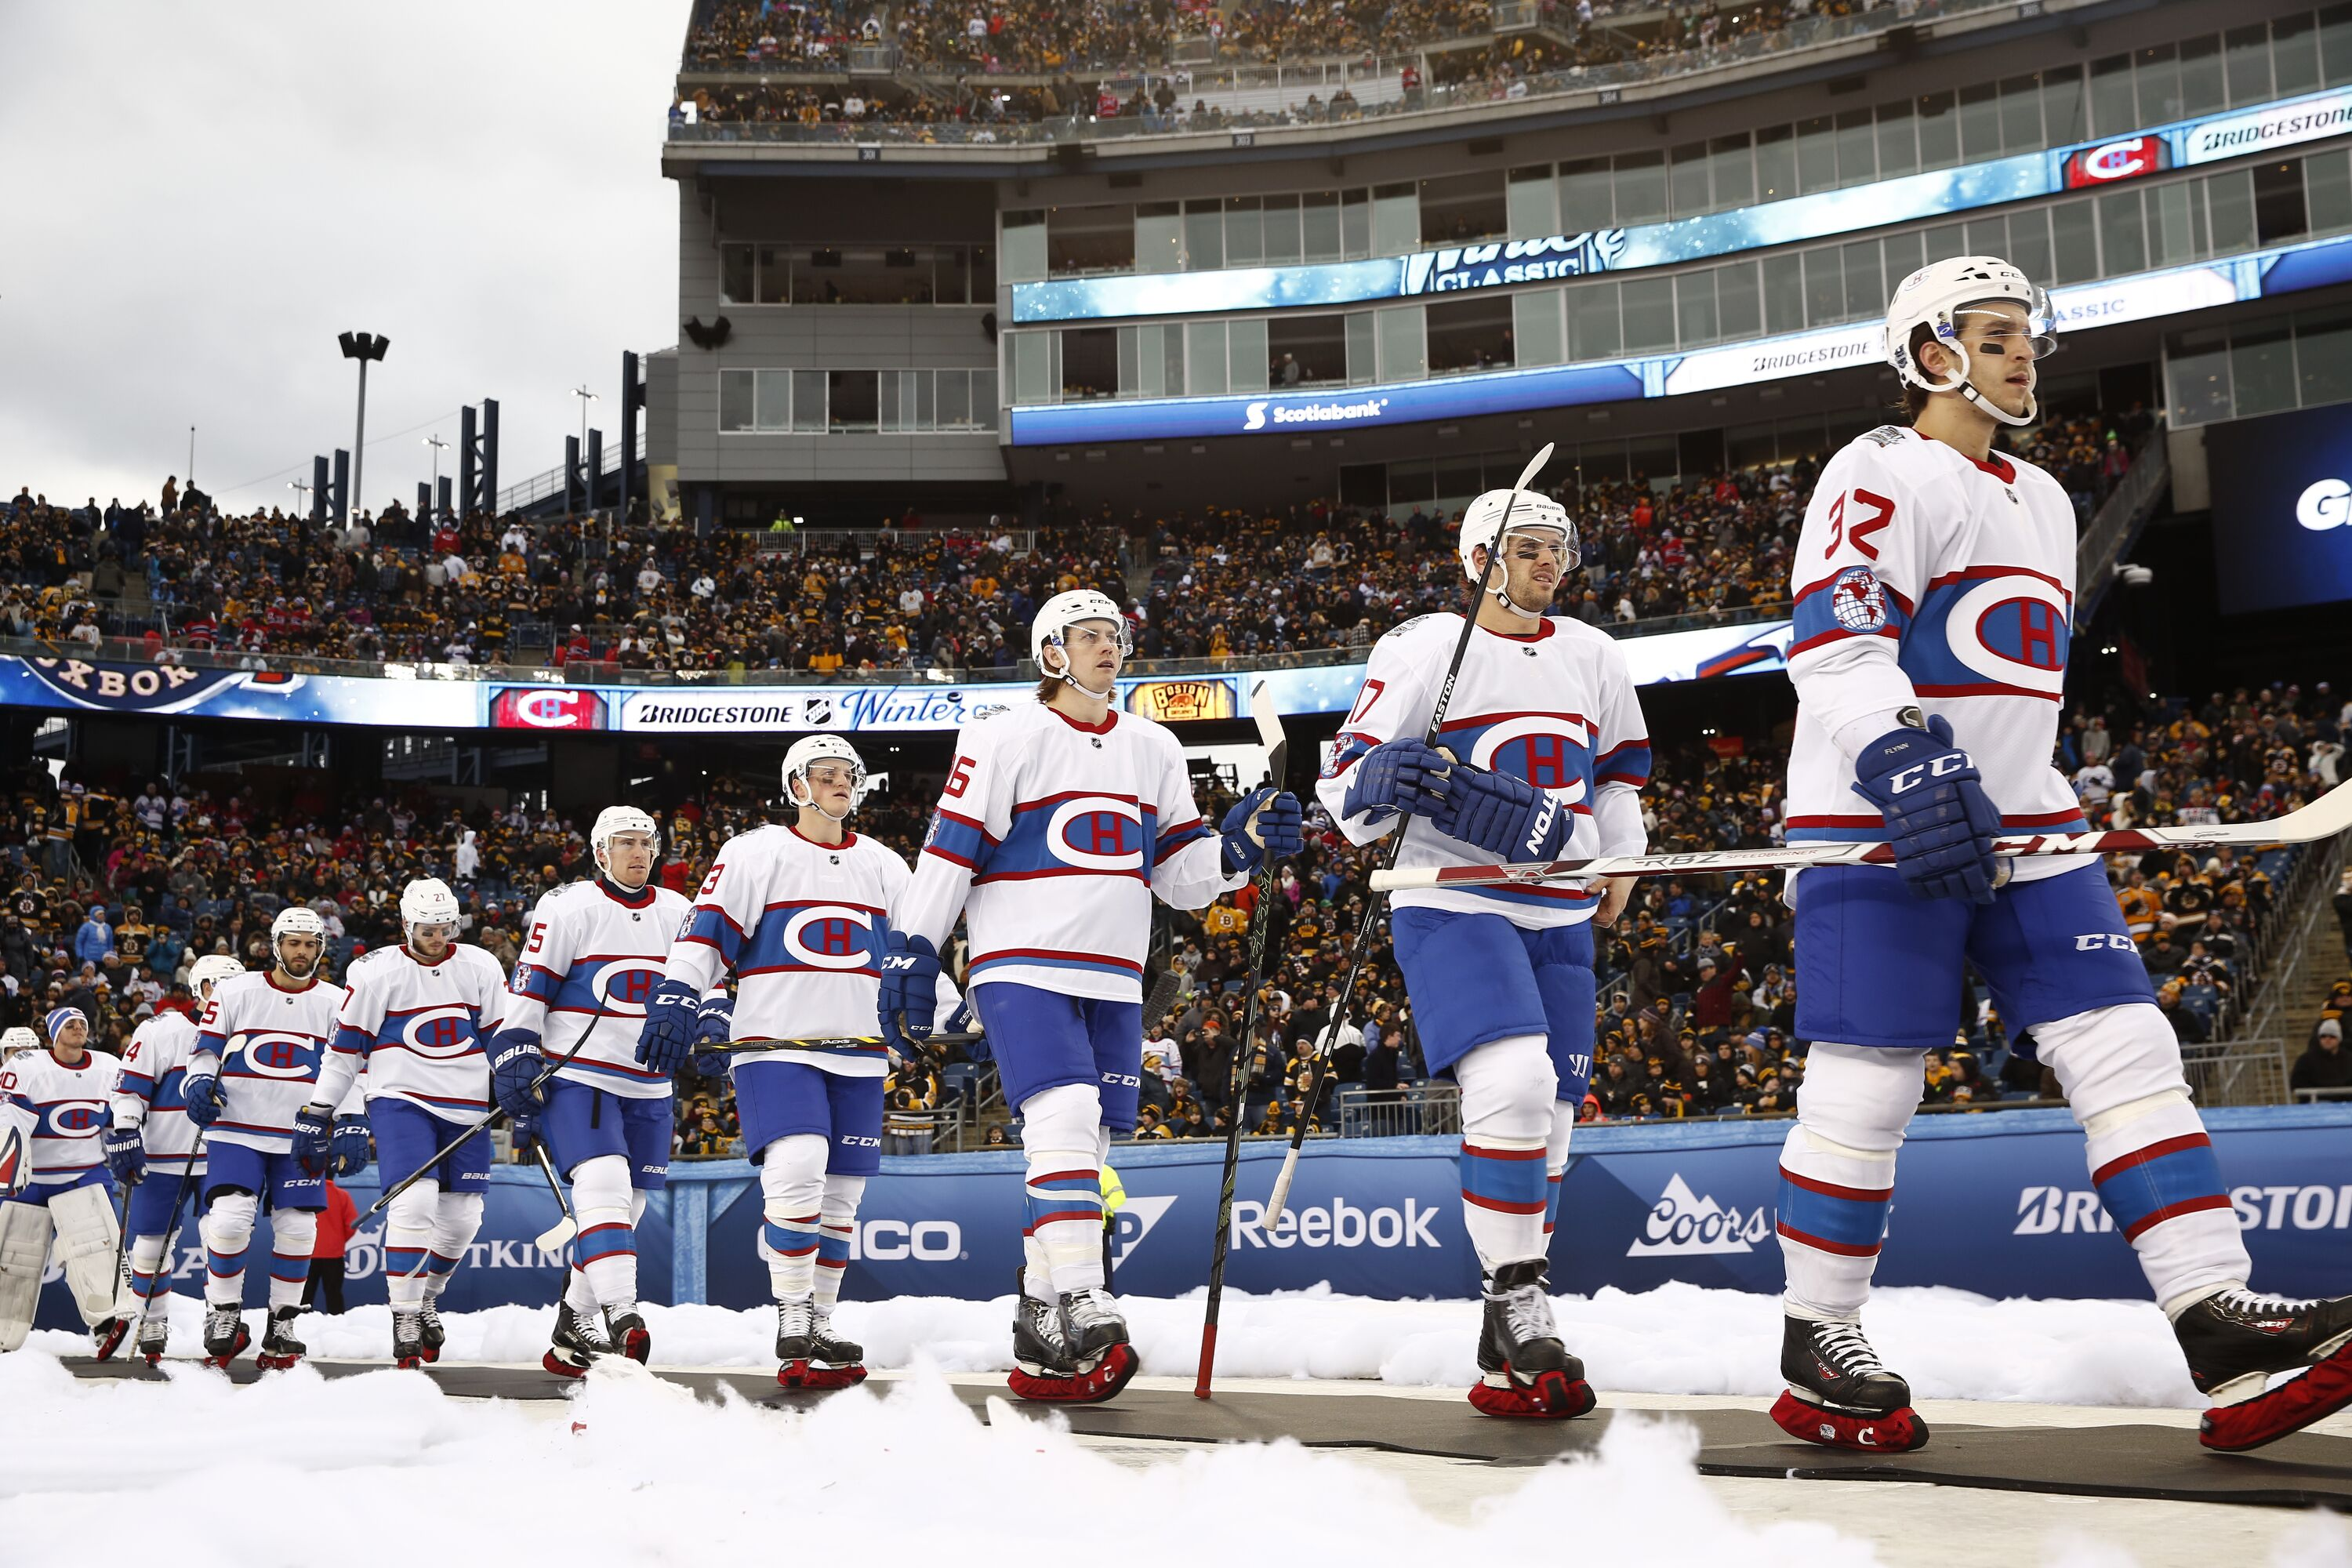 Montreal Canadiens  Uniforms for the NHL100 Classic Game 6393632abcc